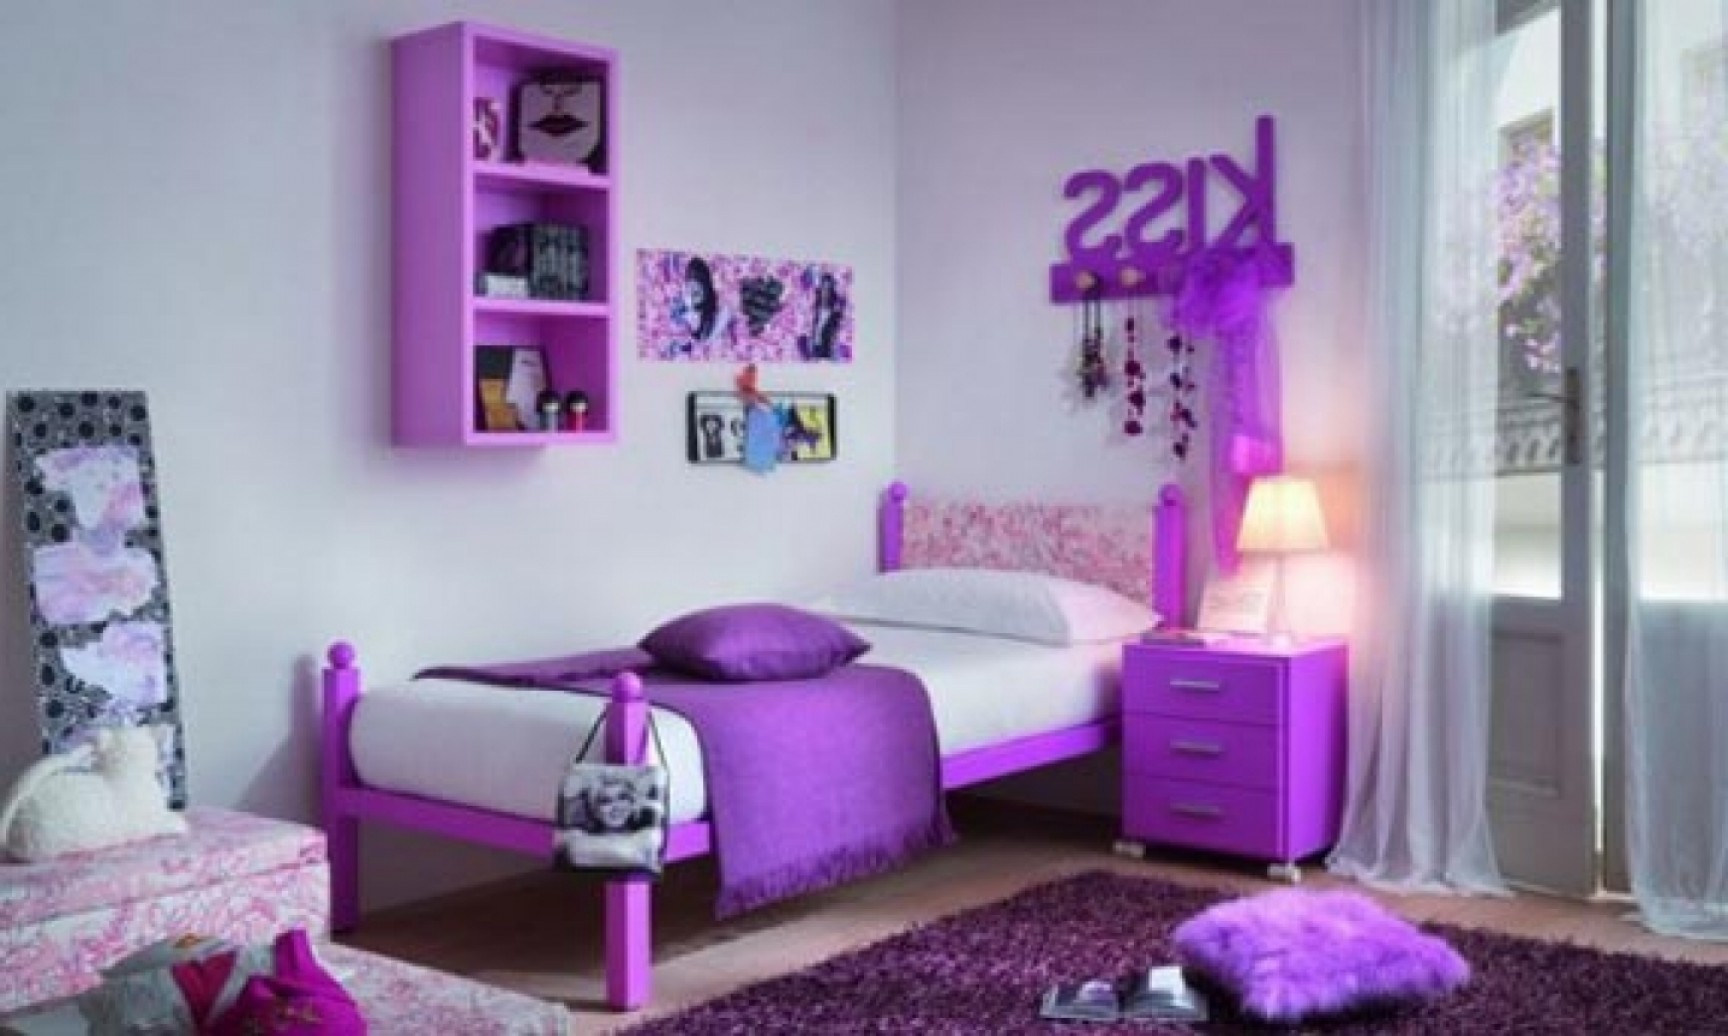 5 tips in small bedroom ideas for teenagers for Bedroom theme ideas